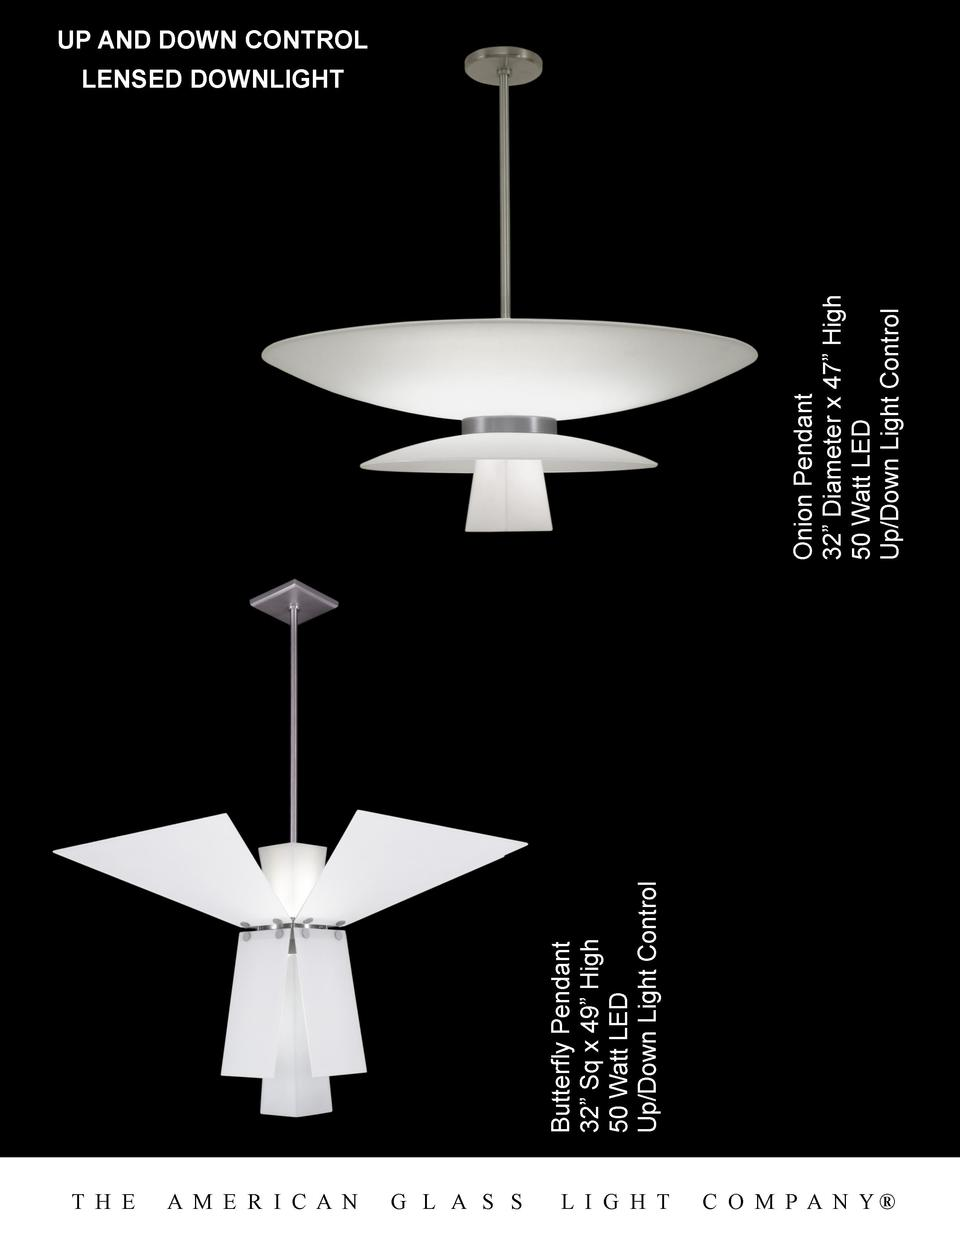 Butterfly Pendant 32    Sq x 49    High 50 Watt LED Up Down Light Control  Onion Pendant 32    Diameter x 47    High 50 Wa...